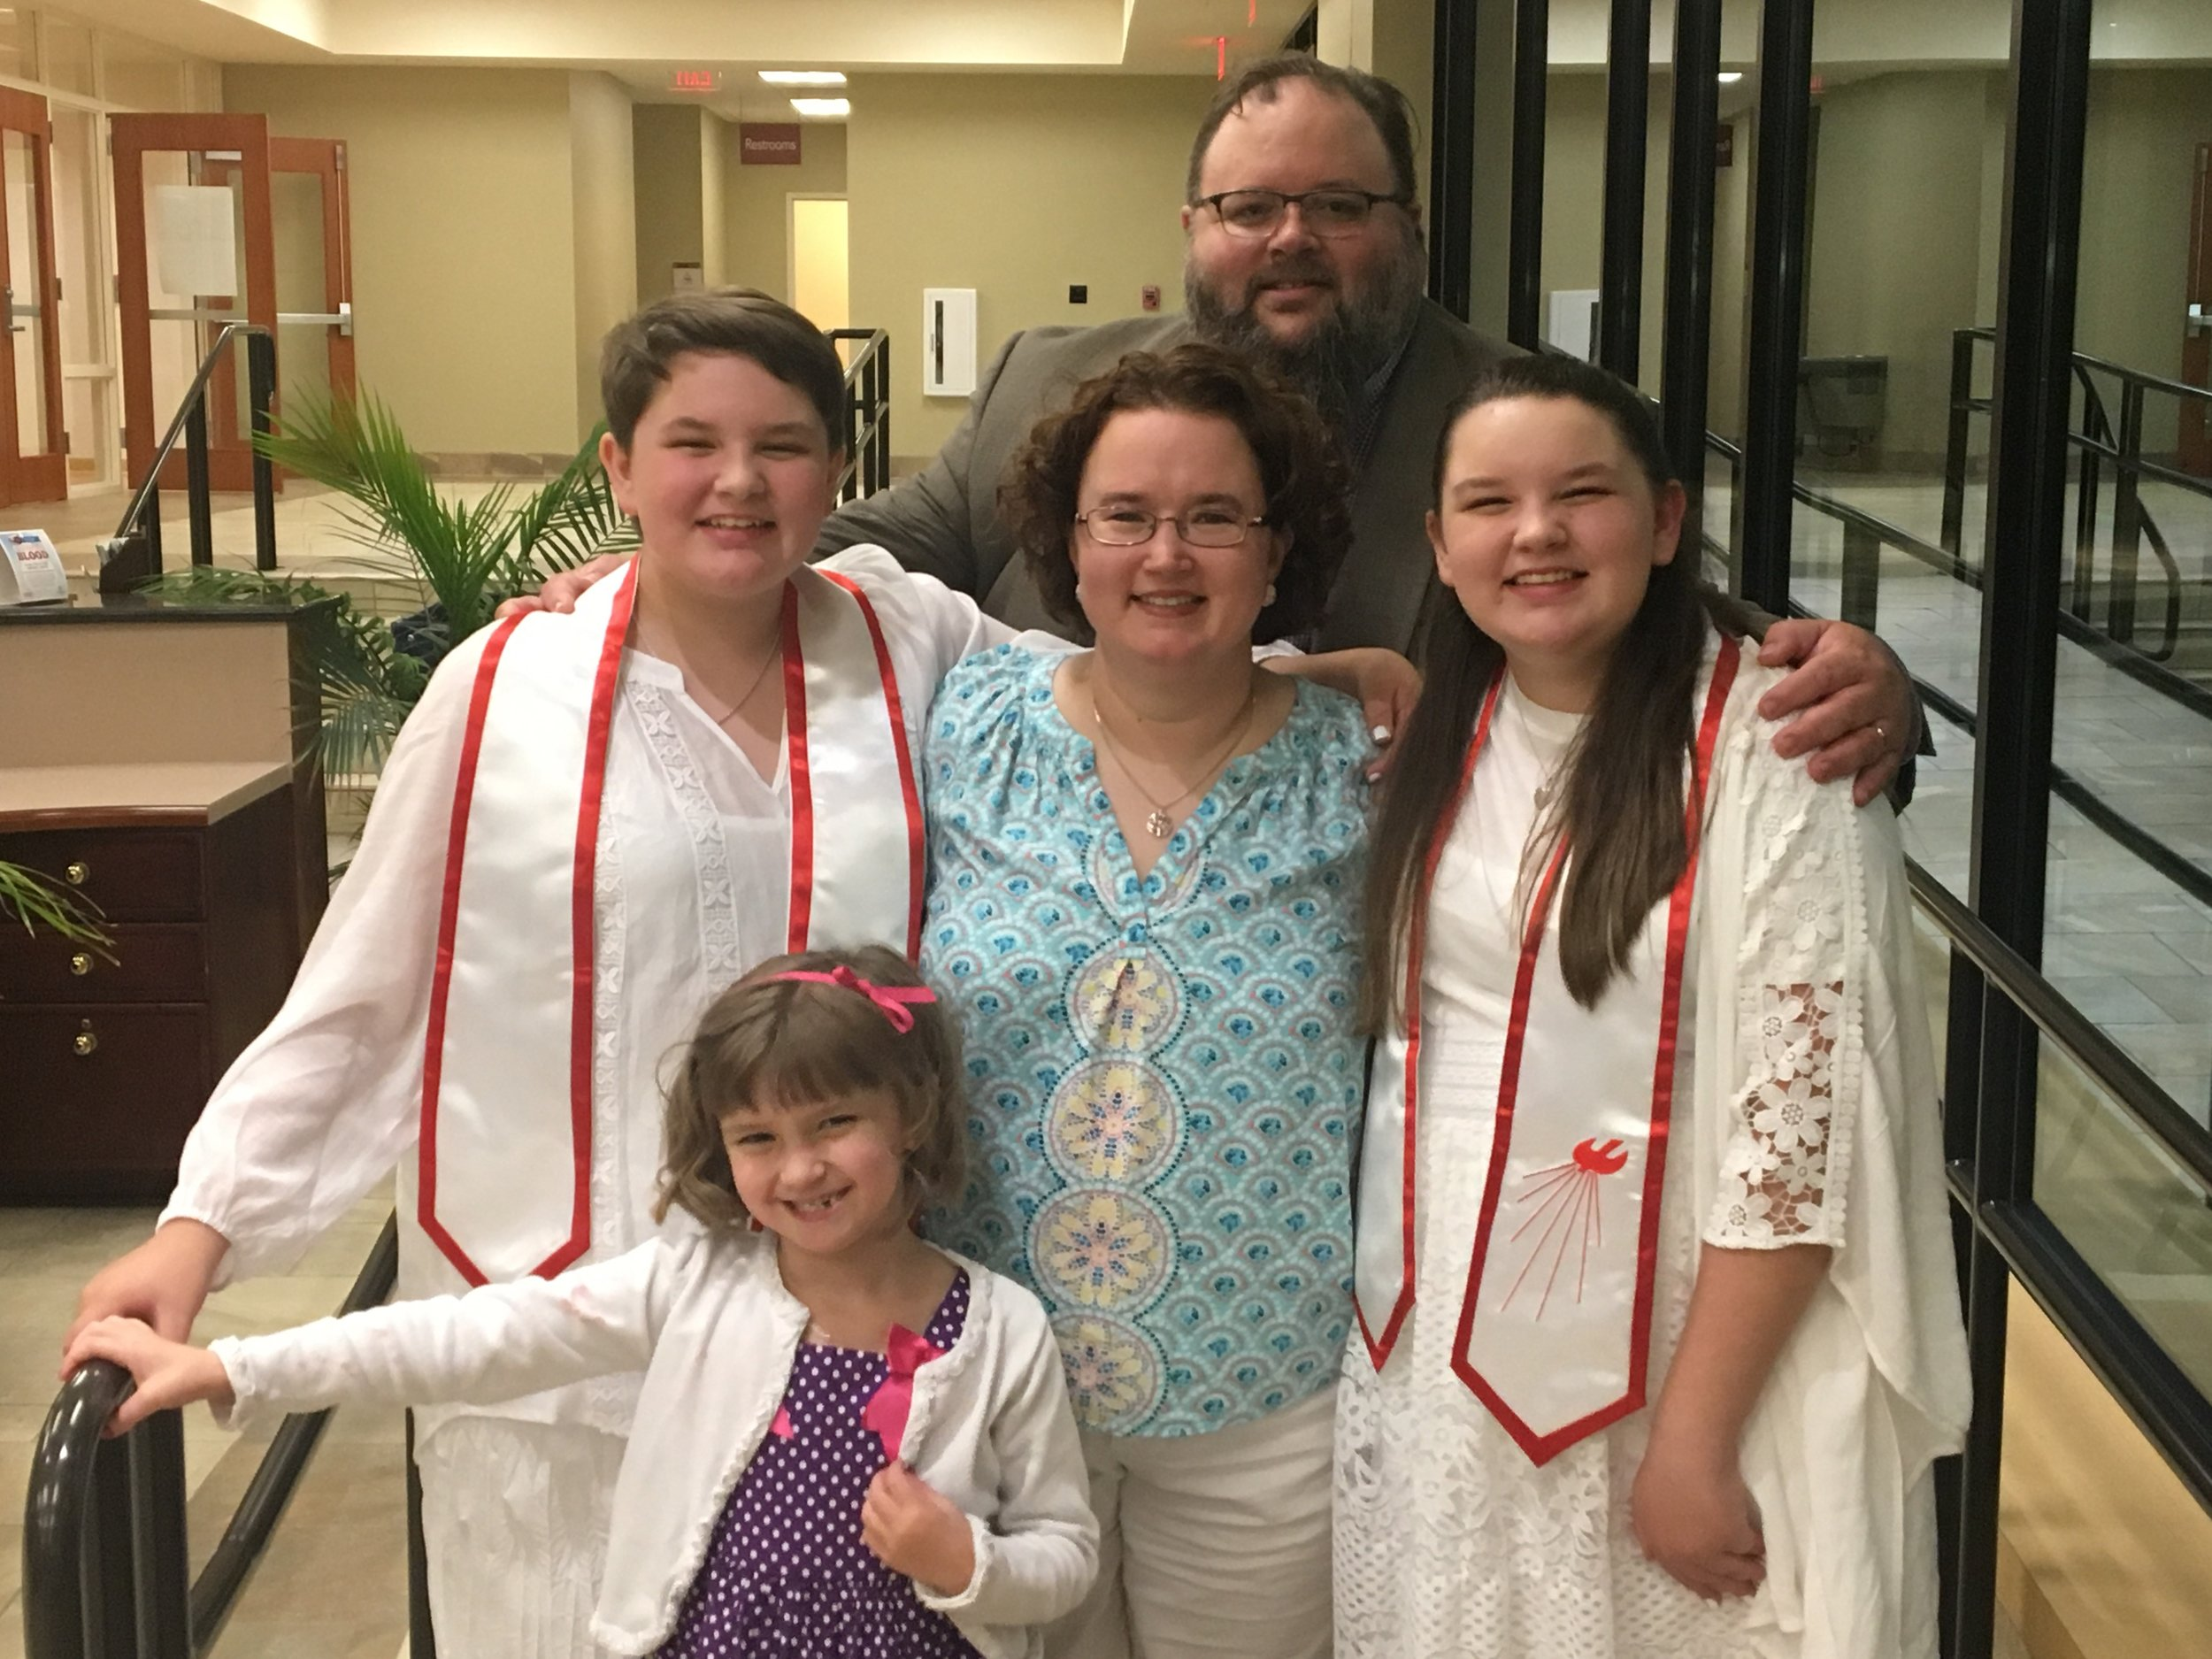 Welcome Pastor Jason Rogers & family - Jason will preach on Sunday, July 7th